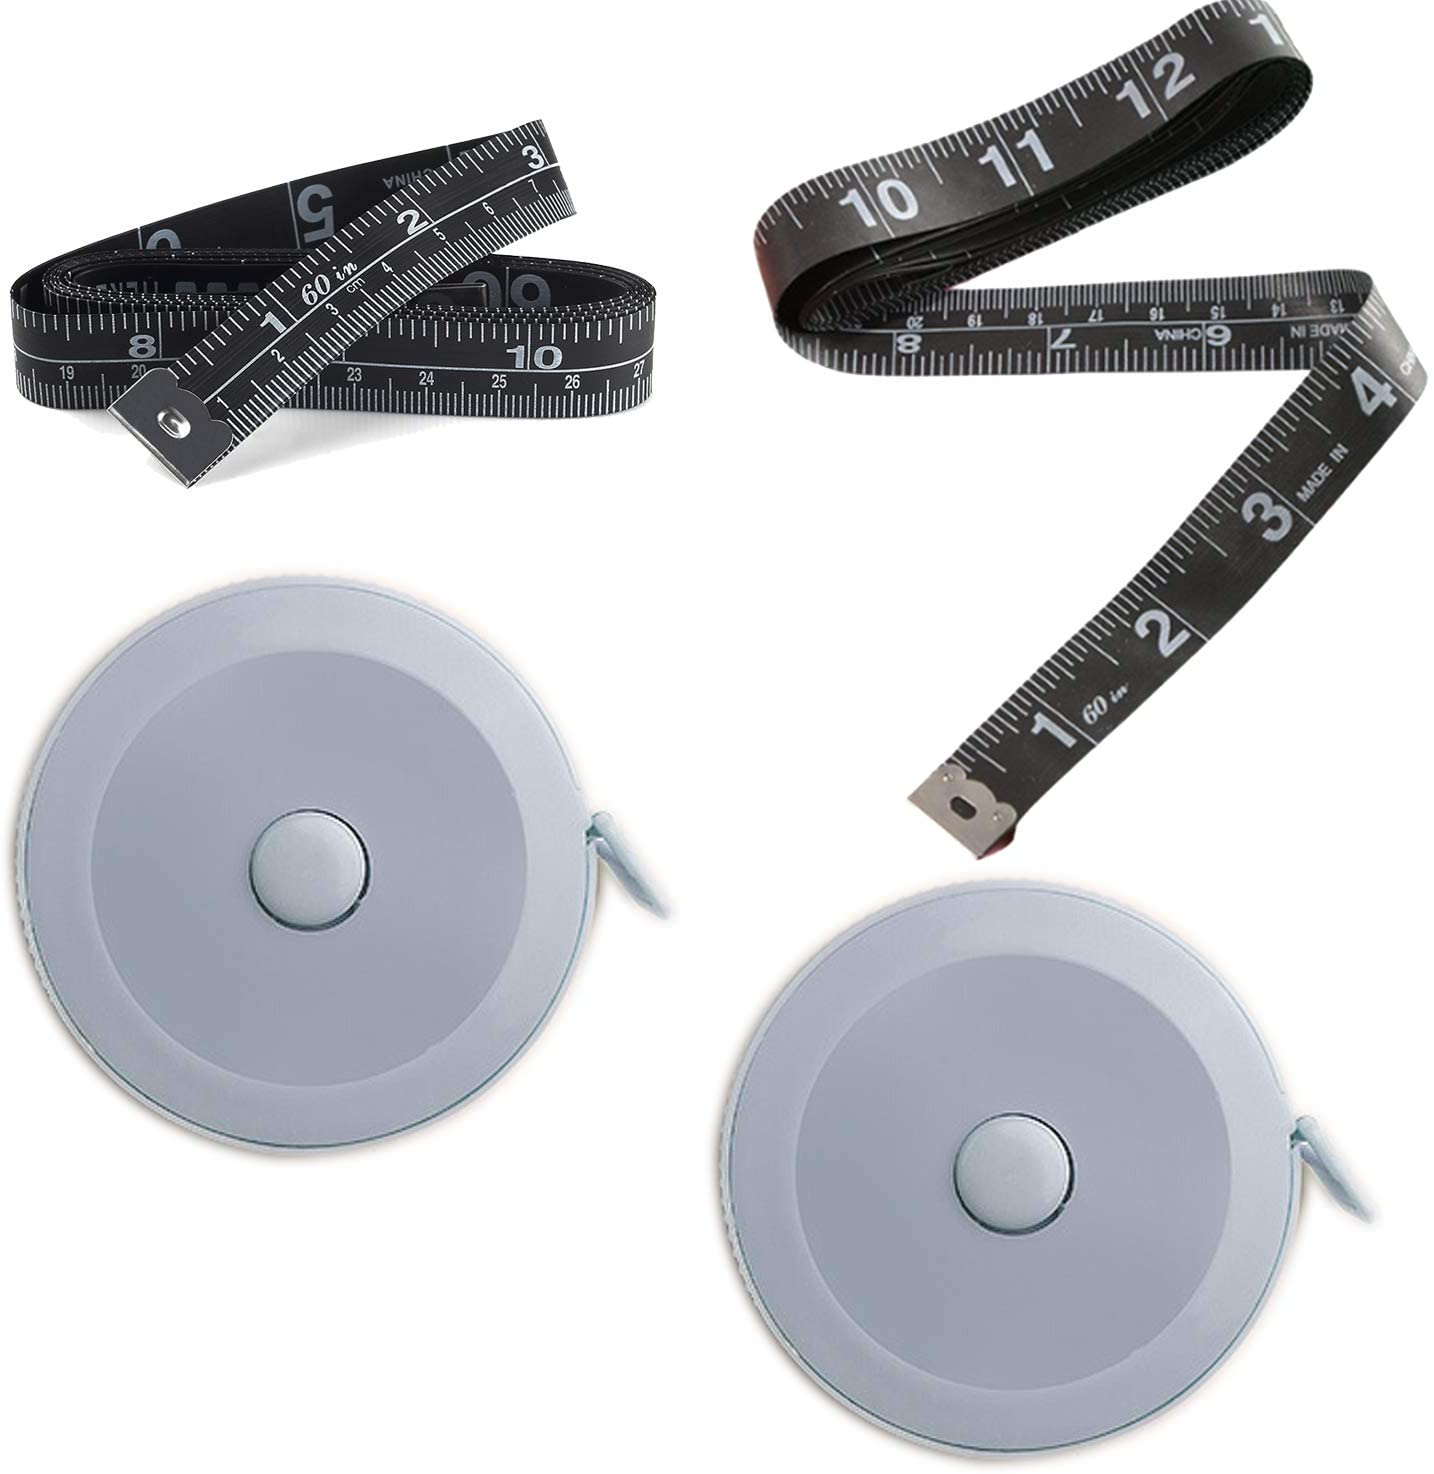 4 Pack Tape Measure Measuring Tape for Body Fabric Sewing Tailor Cloth Knitting Home Craft Measurements, 60-Inch Soft Retractable Black Tape Measure Body Measuring Tape Set, Dual Sided (Blue)